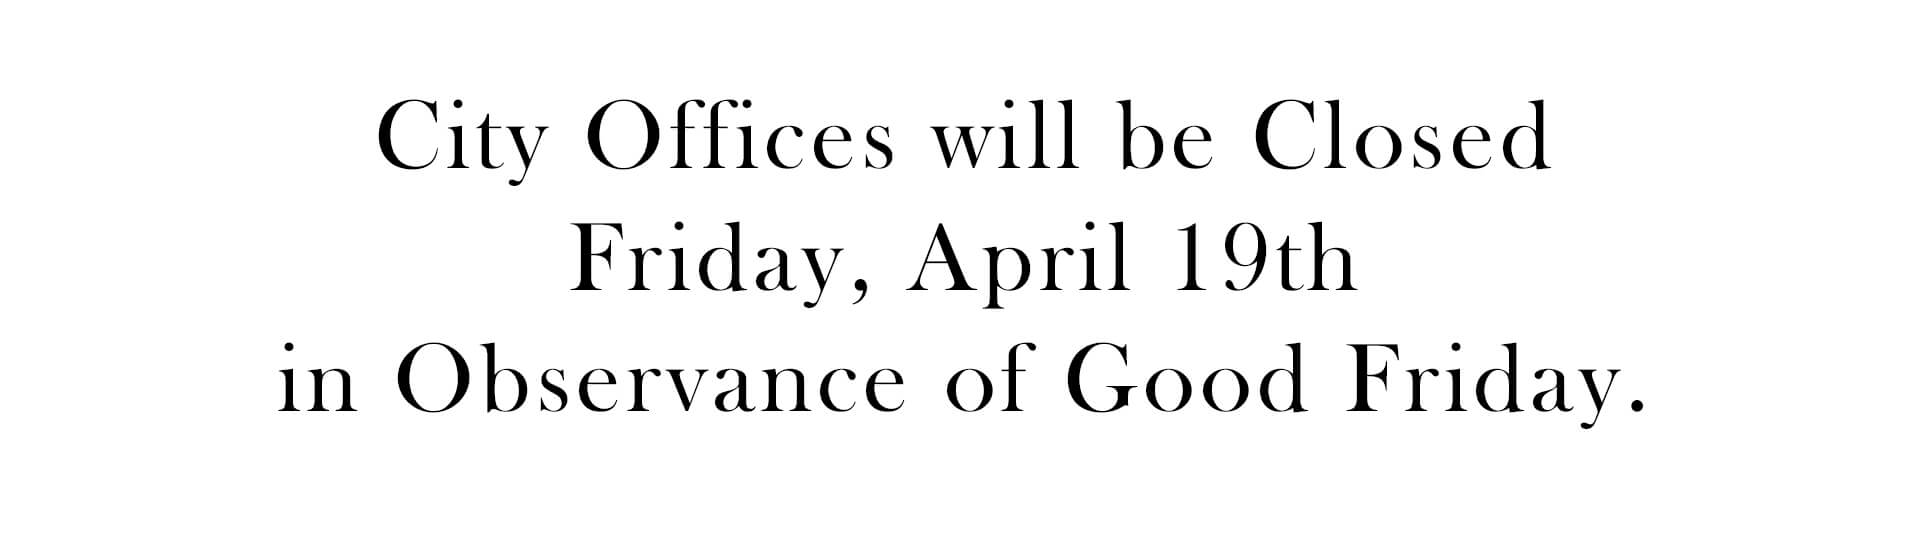 City offices Closed for Good Friday